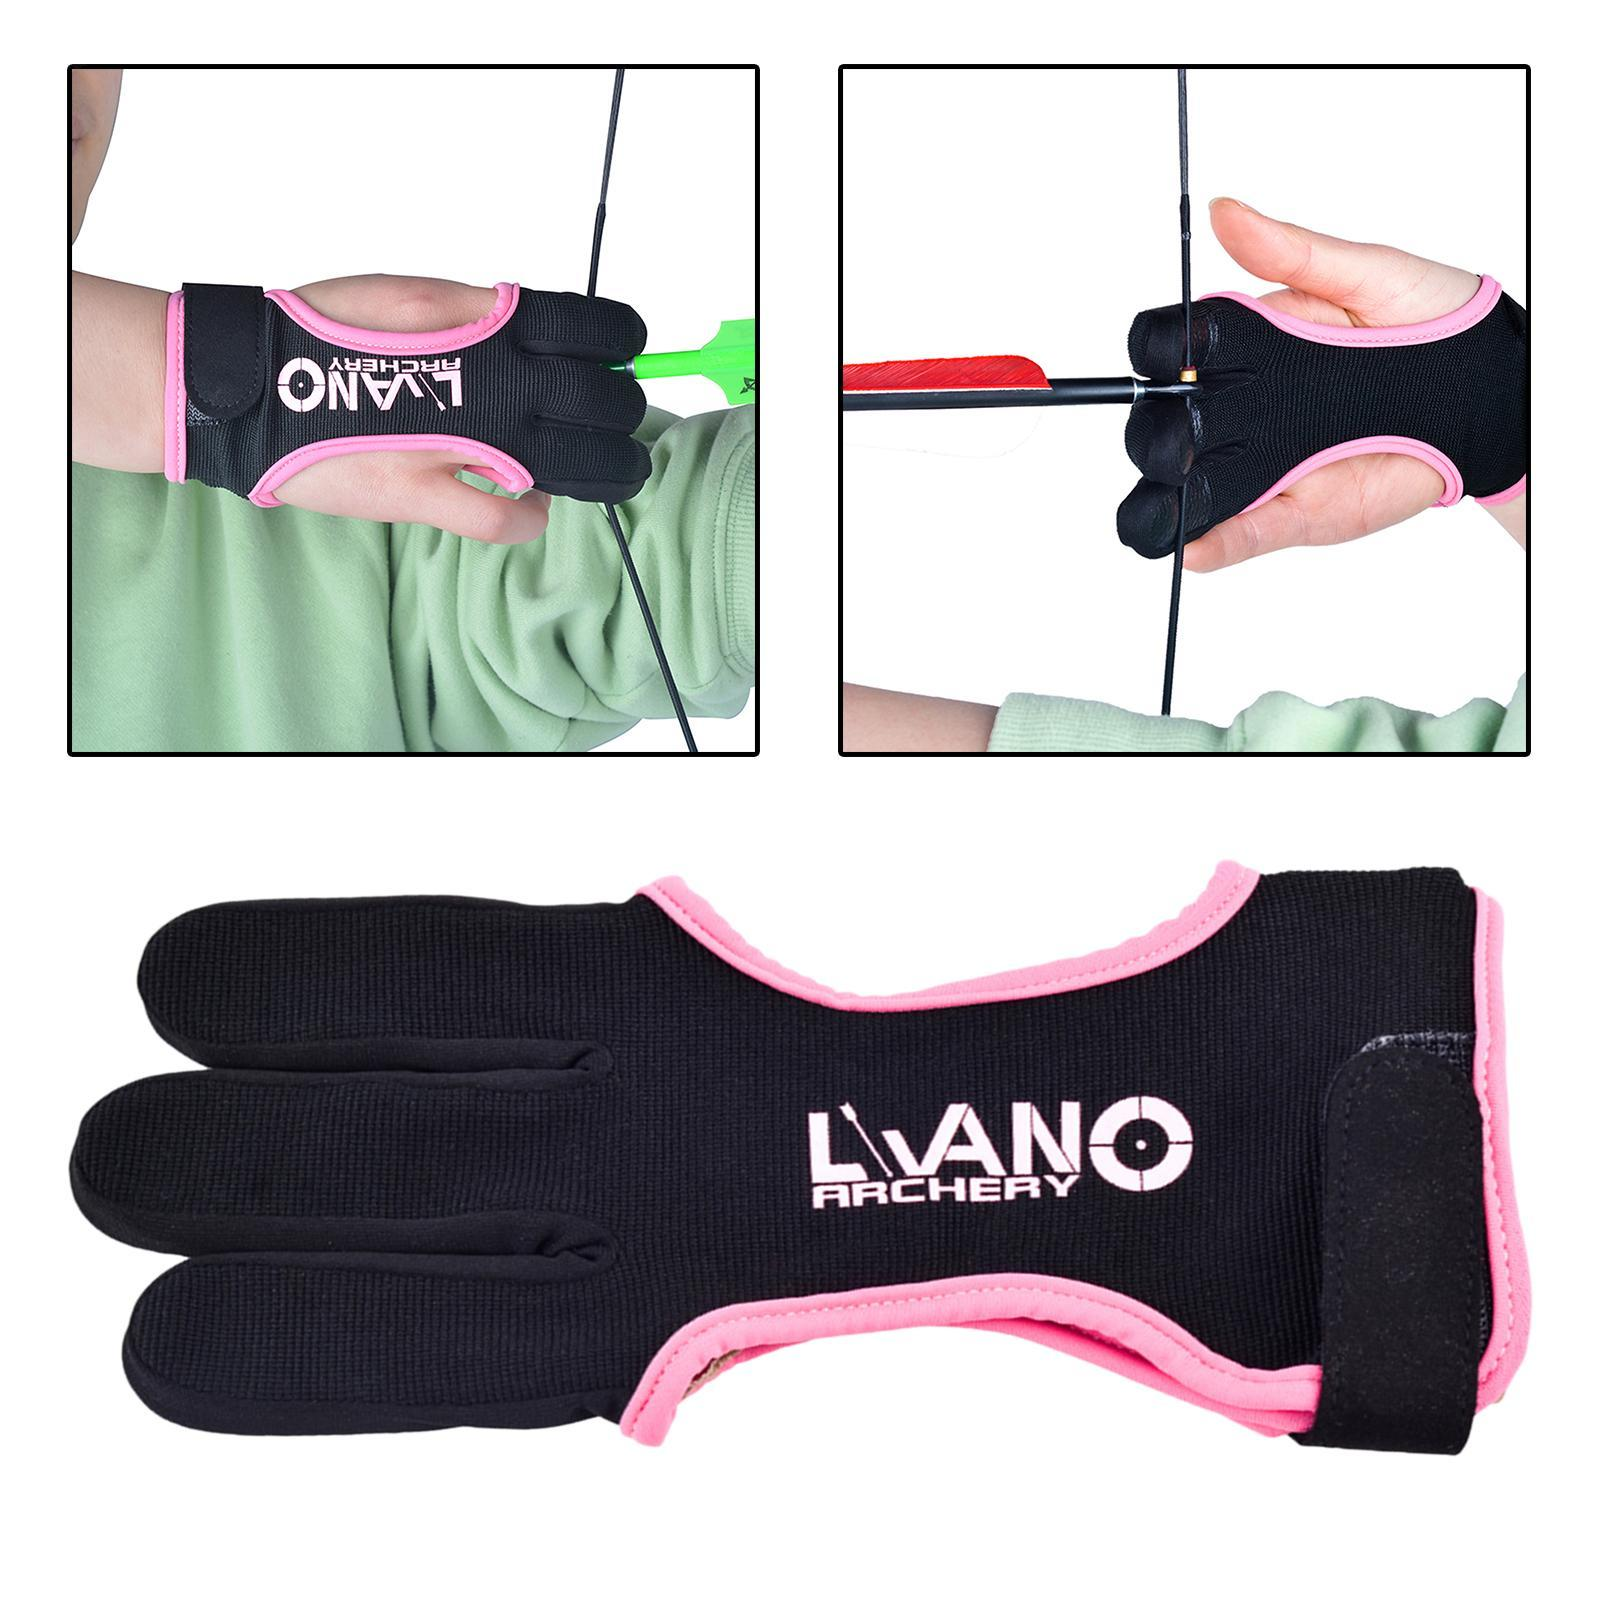 thumbnail 44 - Archery Glove for Recurve & Compound Bow 3 Finger Guard for Women Men Youth